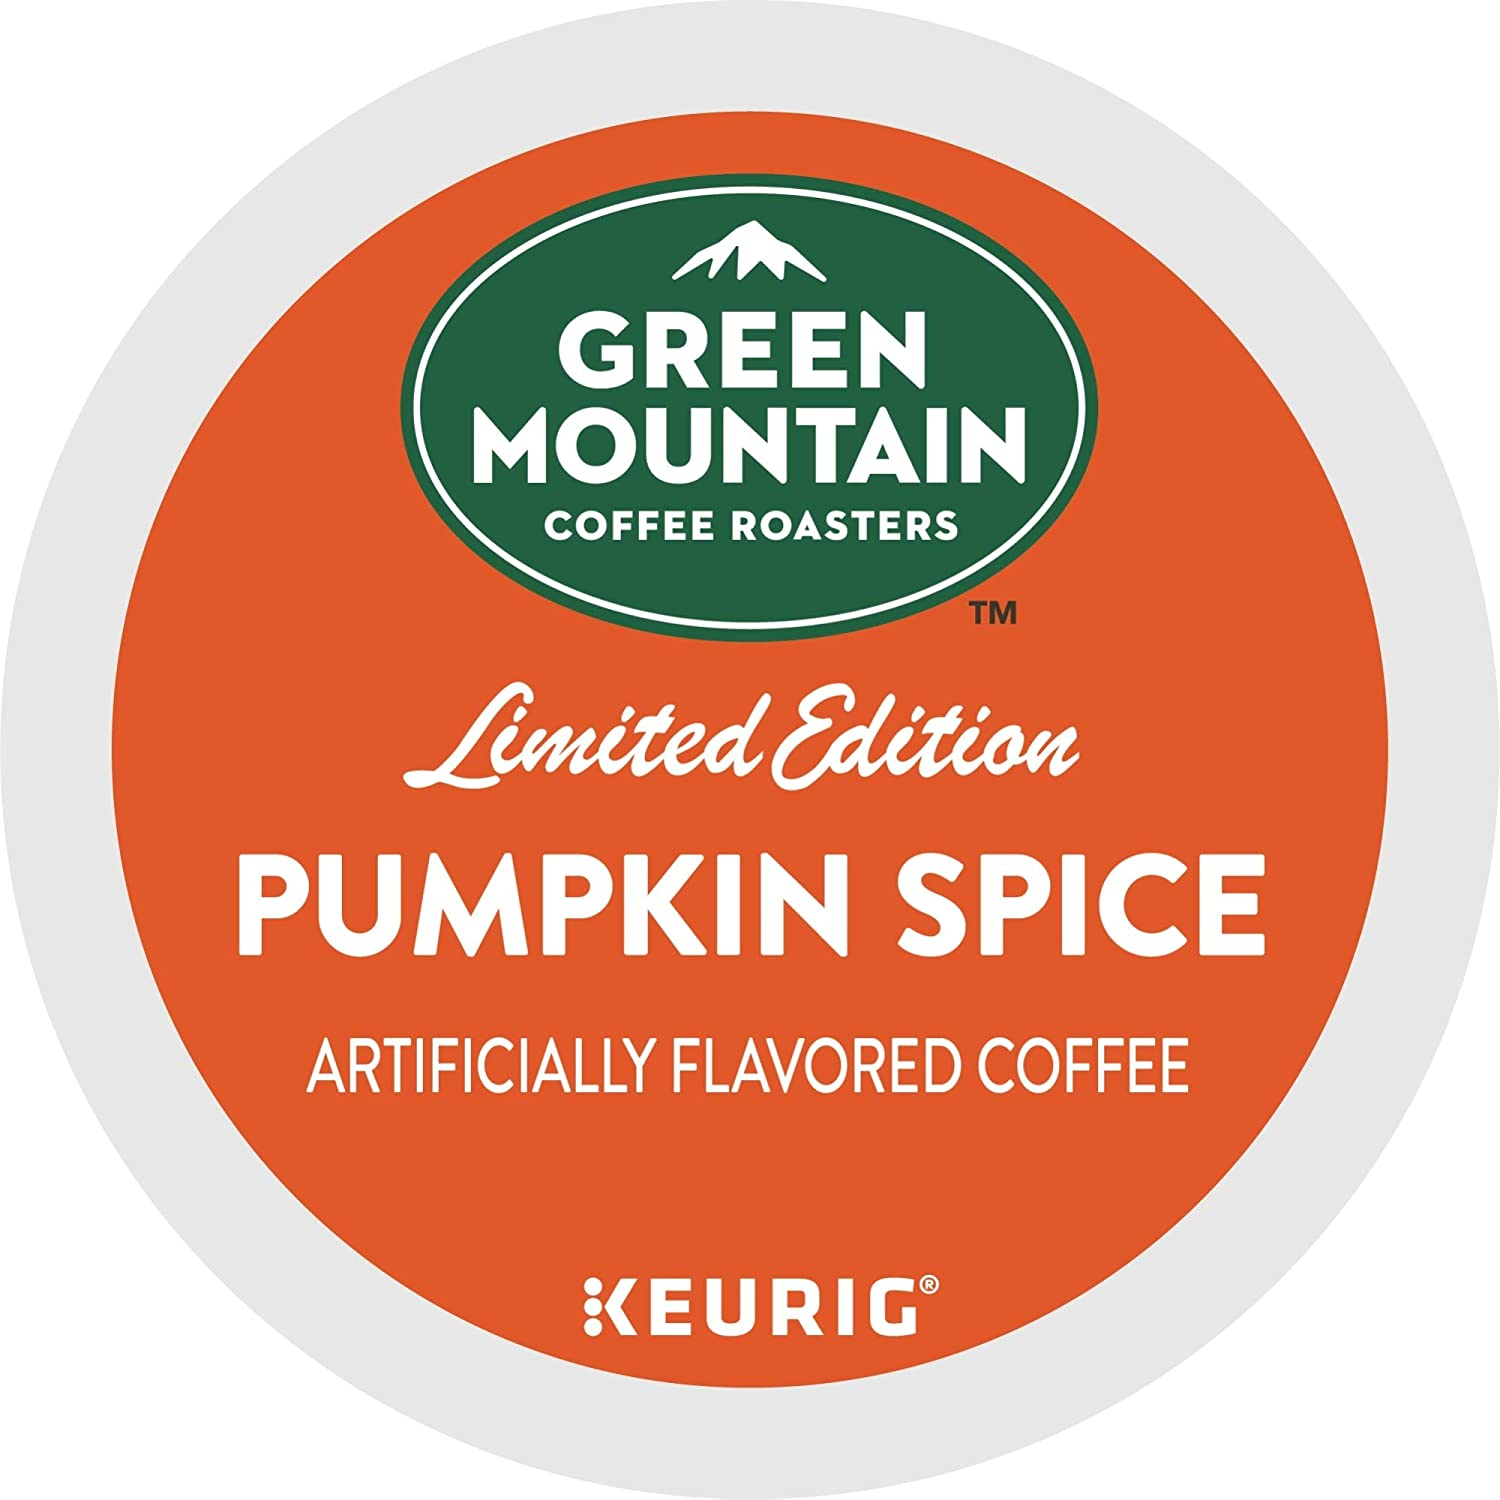 Green Mountain Coffee Roasters Pumpkin Spice Keurig Single-Serve K-Cup Pods, Light Roast Coffee, 72 Count